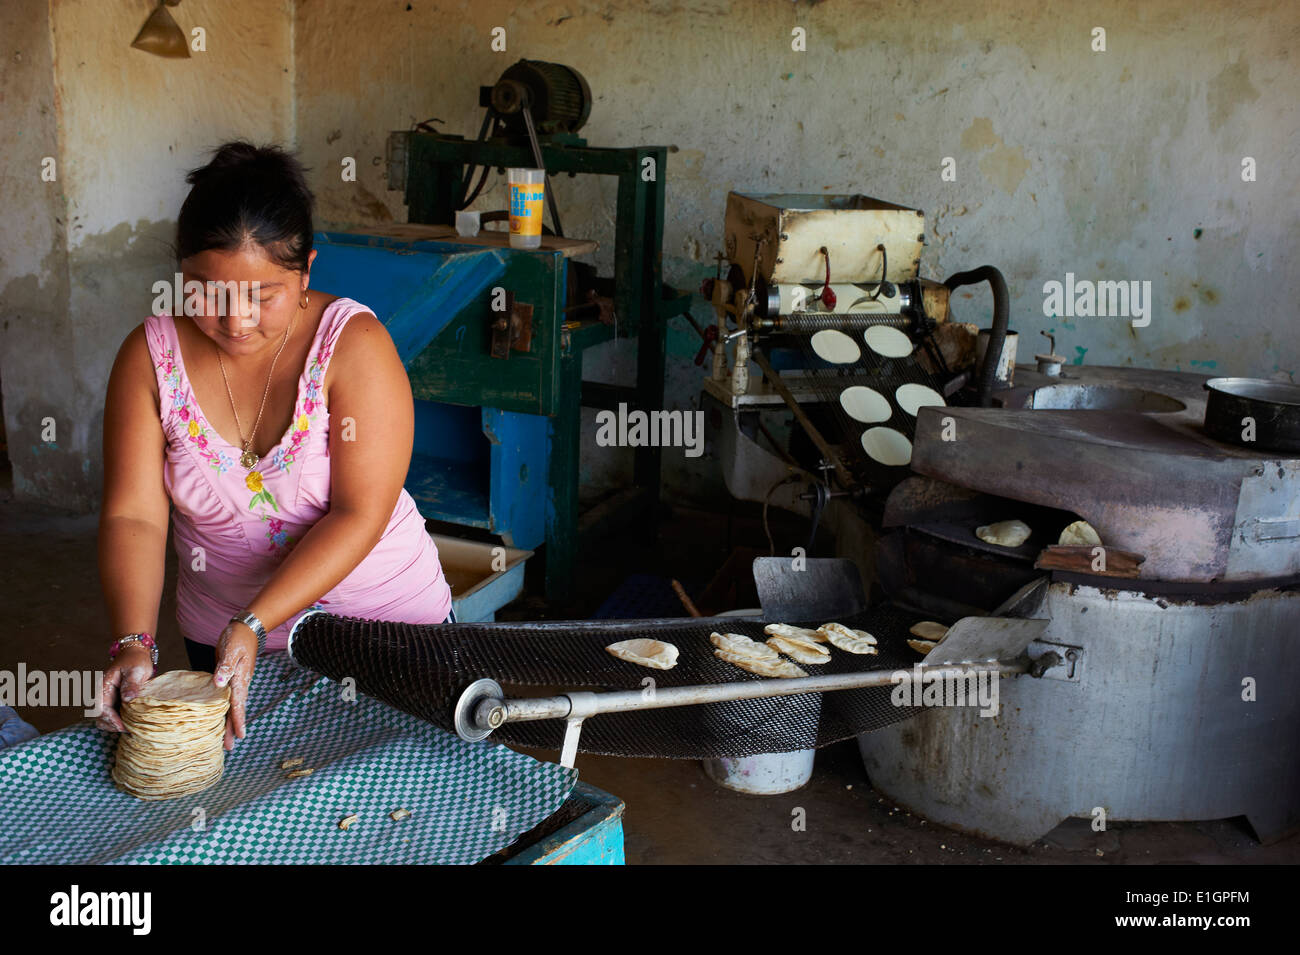 Mexico, Yucatan state, Merida, the capital of Yucatan, tacos factory - Stock Image